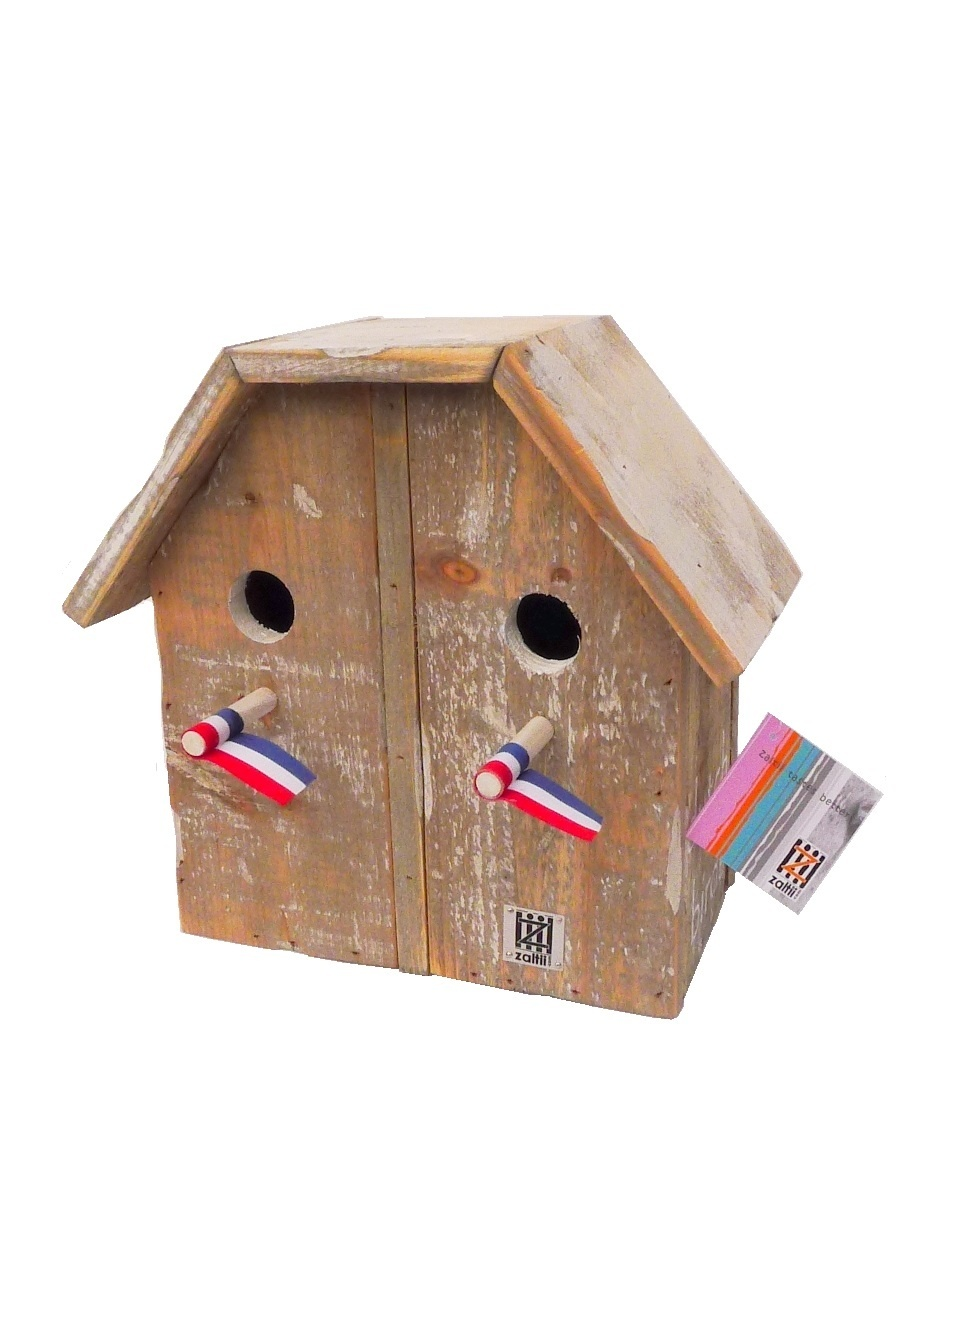 birdhouse old dutch 2 under 1 roof-1